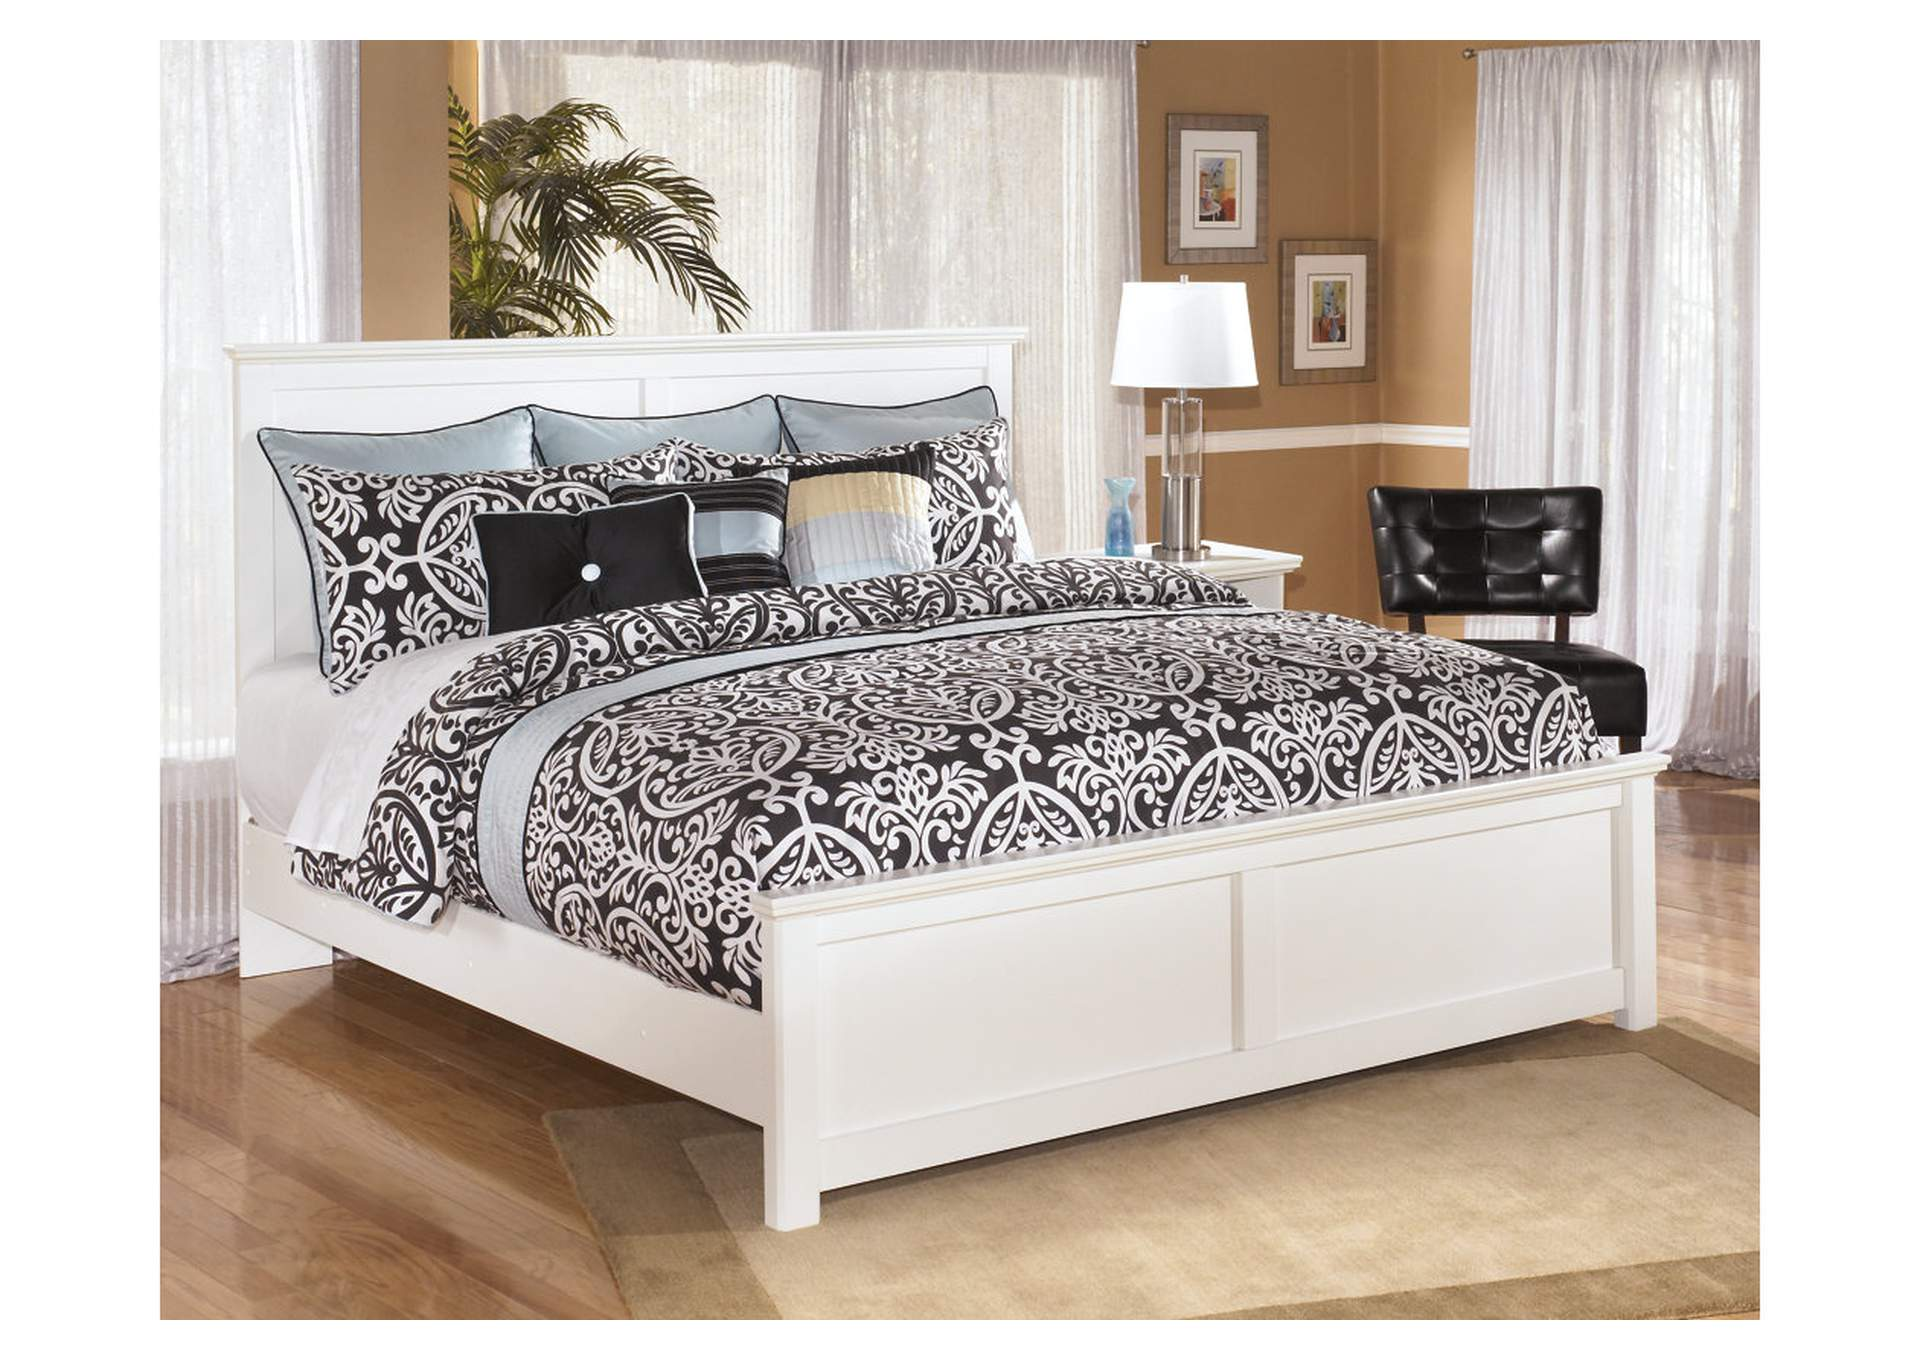 Bostwick Shoals King Panel Bed,ABF Signature Design by Ashley